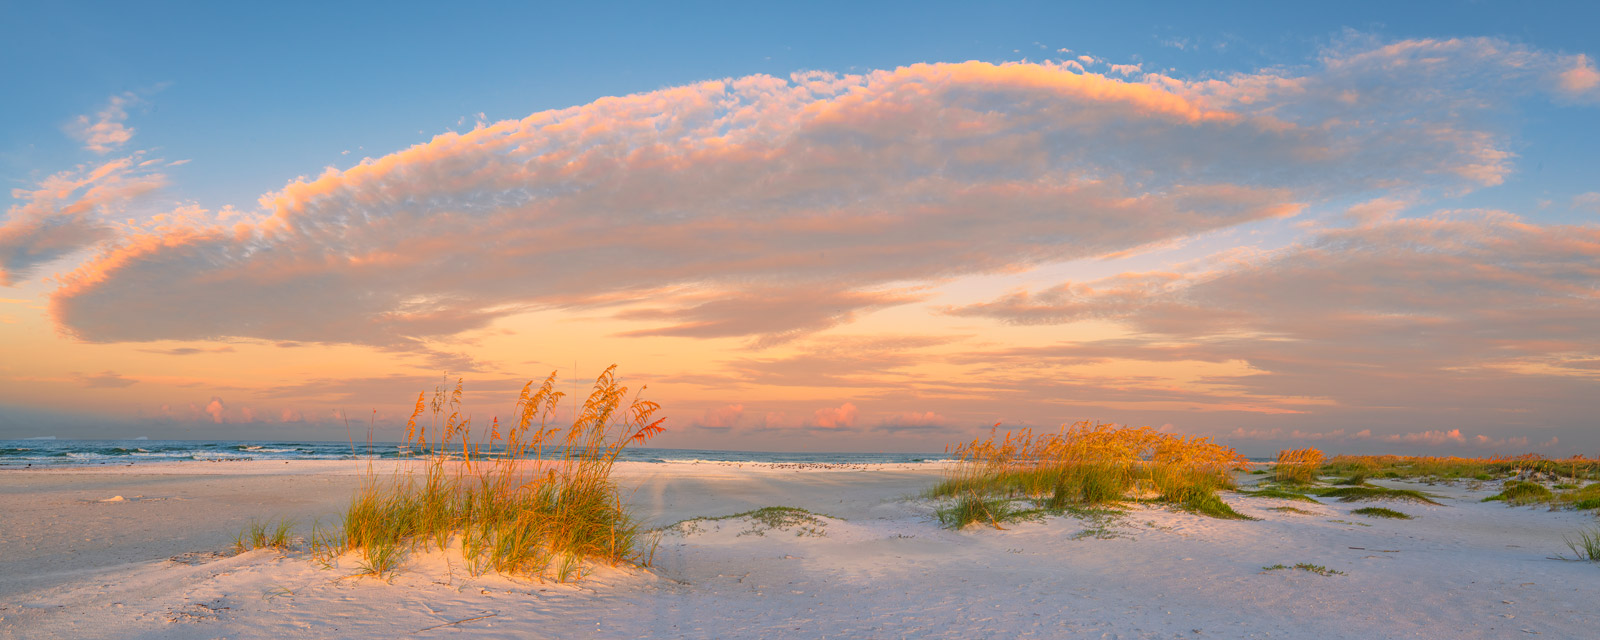 A Limited Edition, Fine Art photograph of a soft, colorful sunrise on the Gulf Coast at Lido Key, Florida. Available as a Fine...